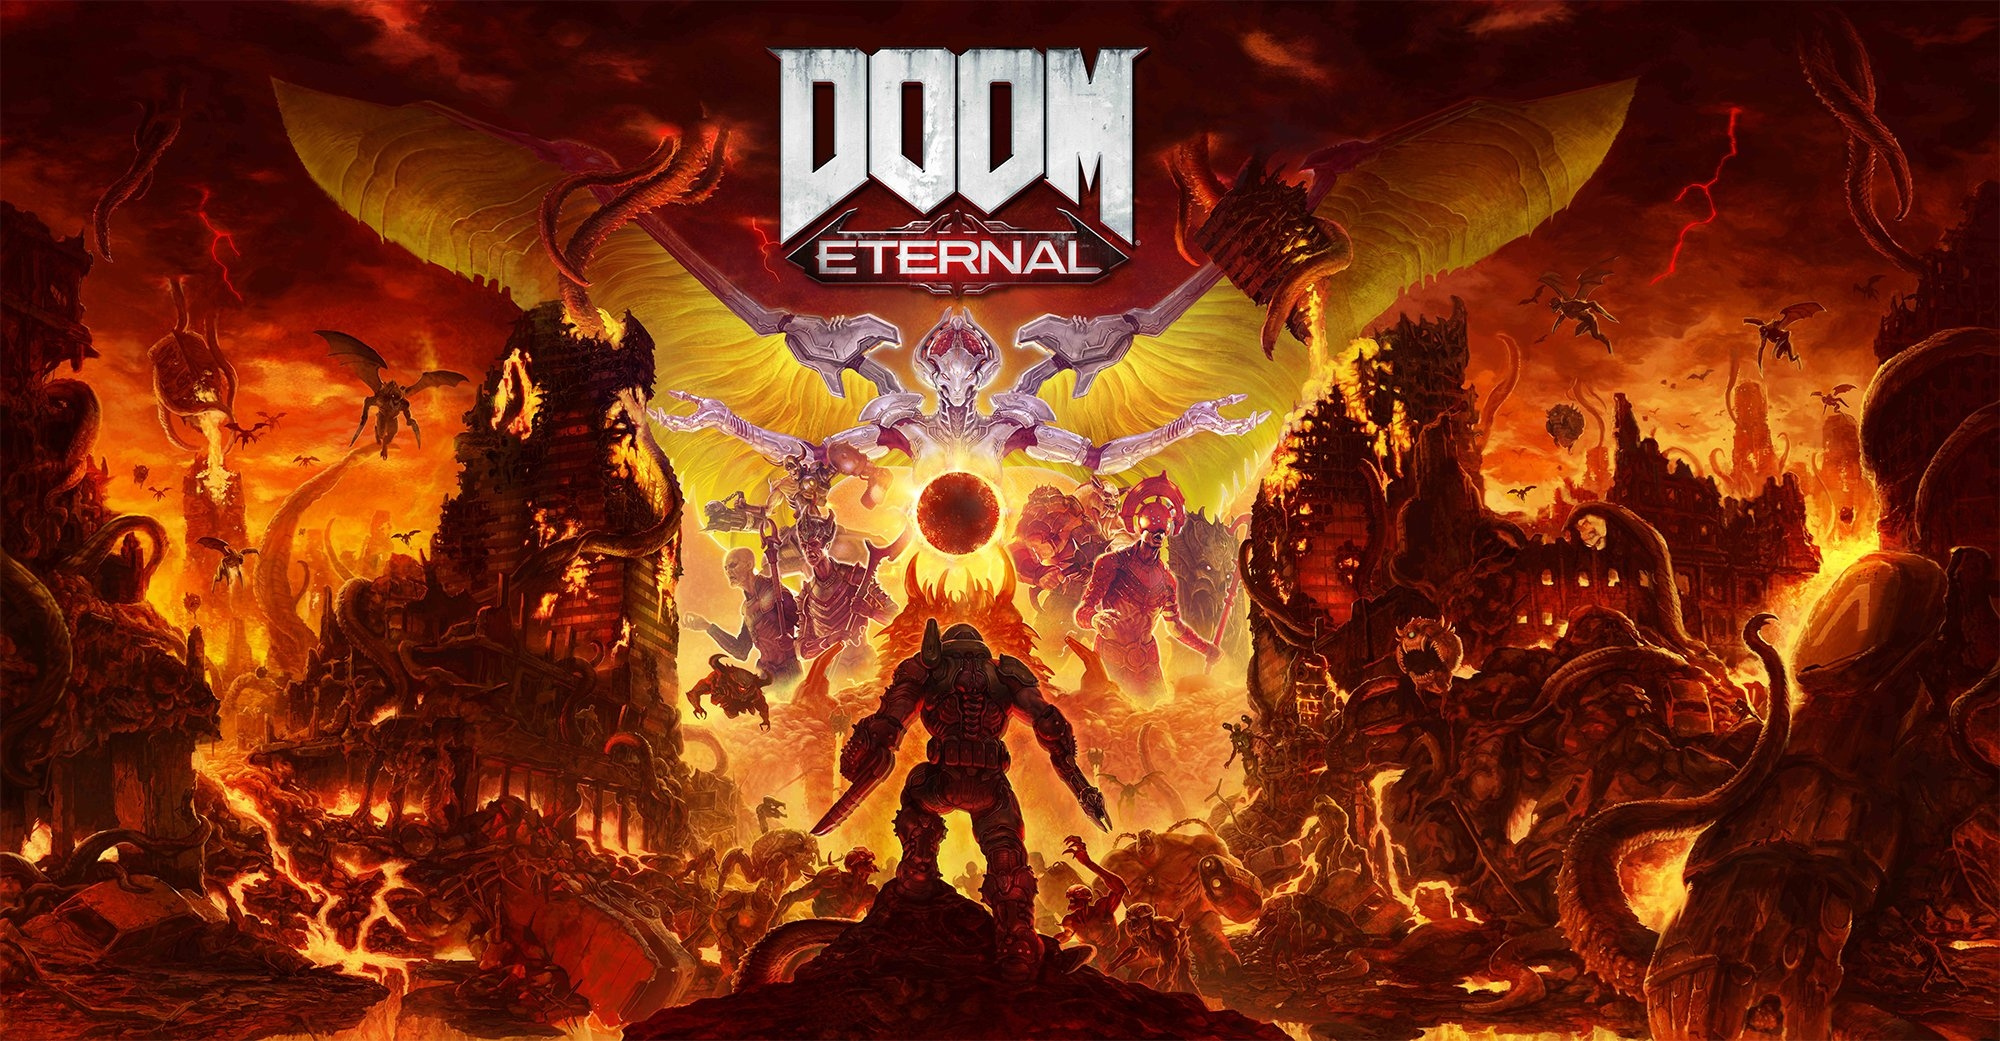 DOOM Eternal Raises Hell On Switch This November, But It Doesn't